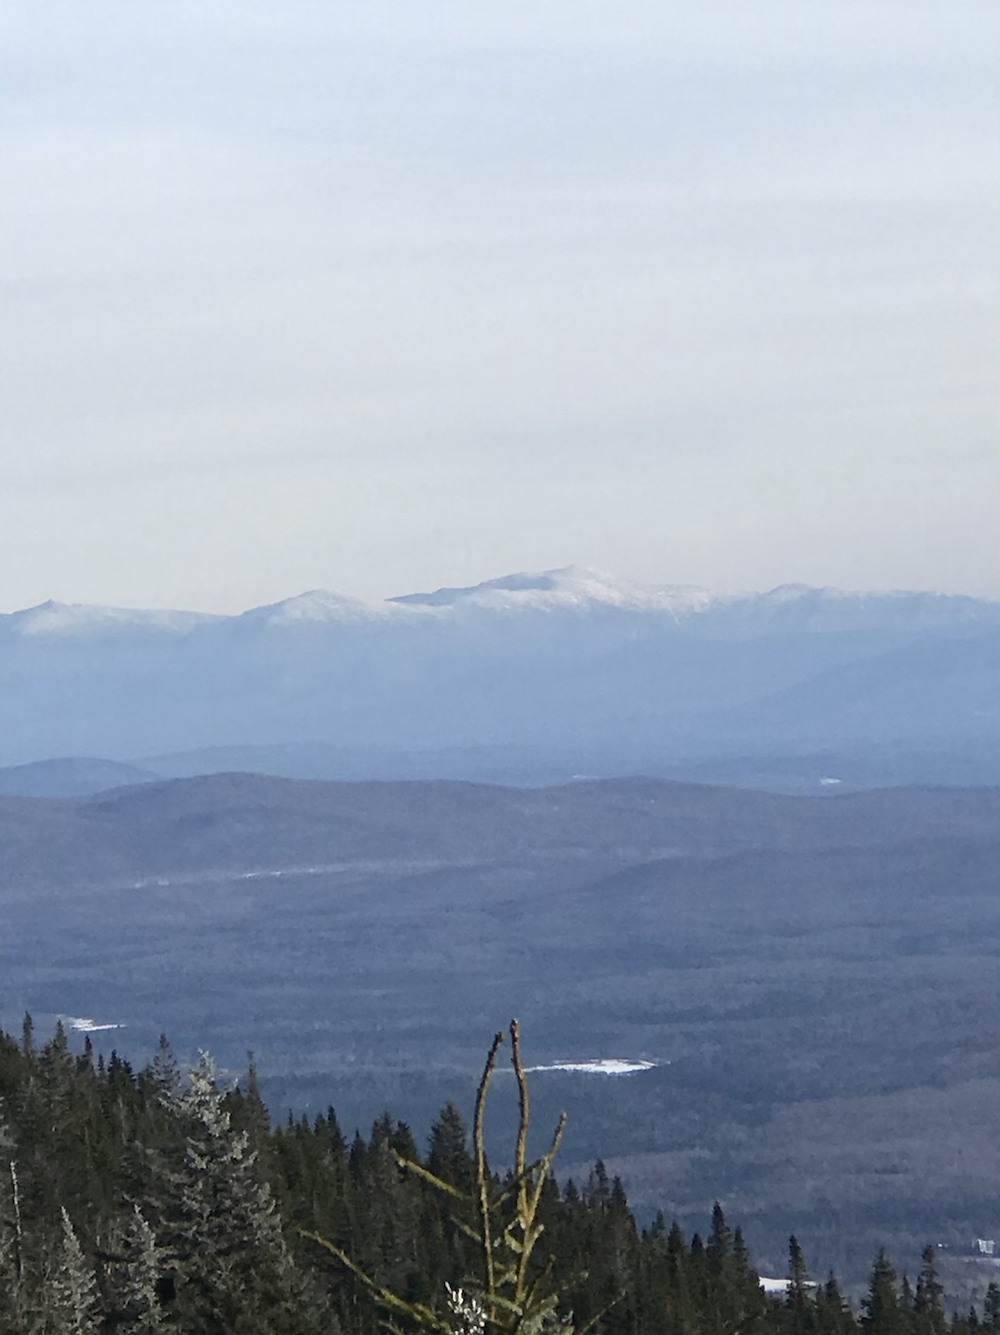 View of the Whites from Burke Mountain